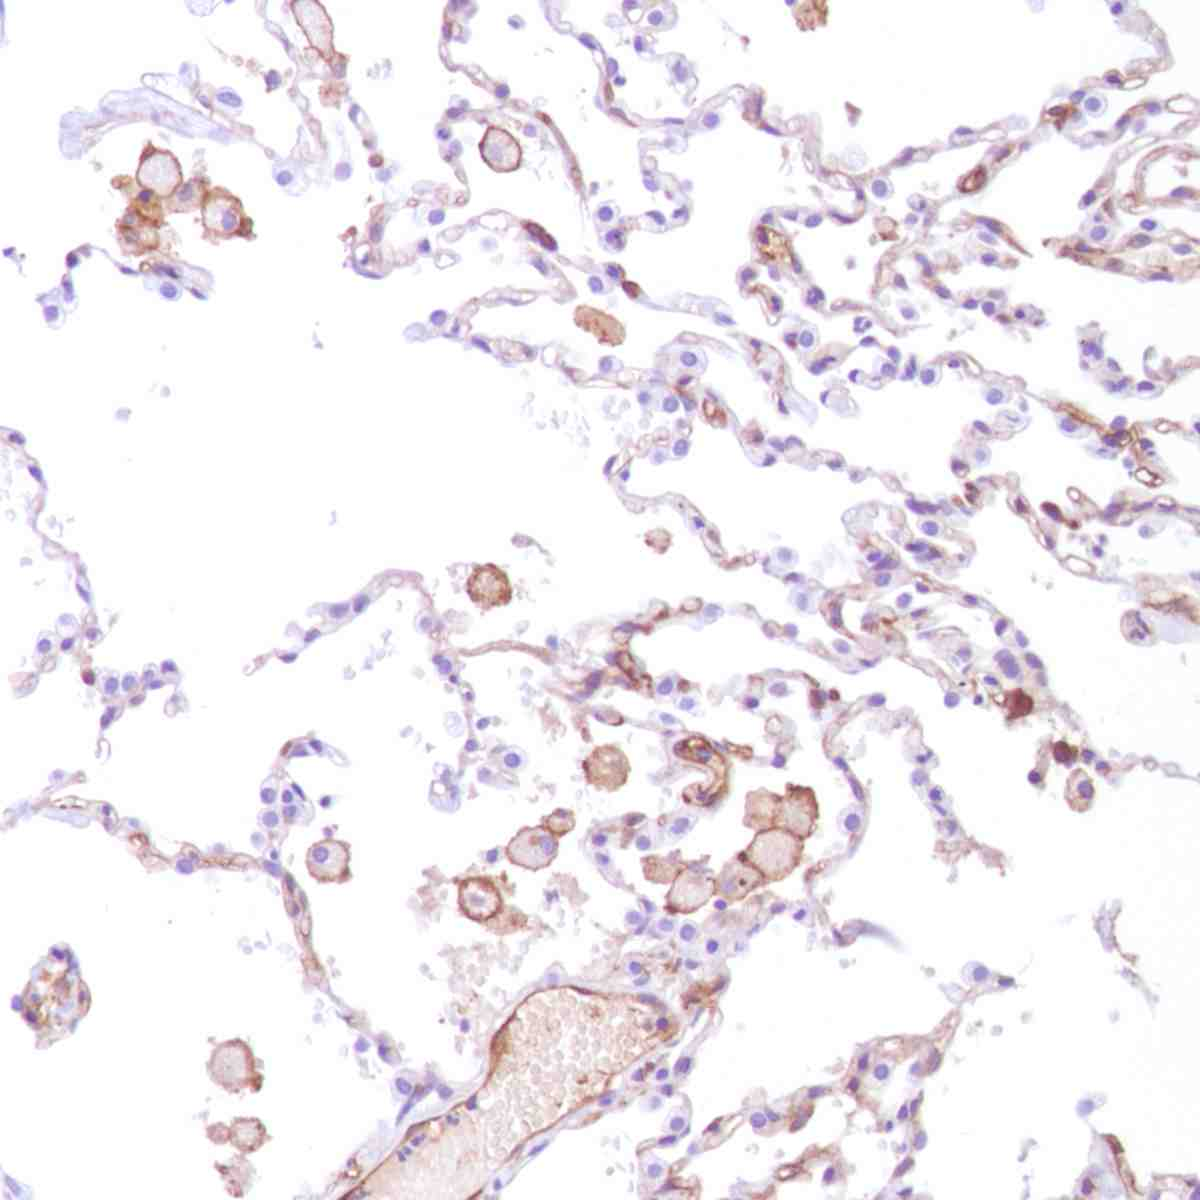 Human Lung stained with anti-CD14 antibody